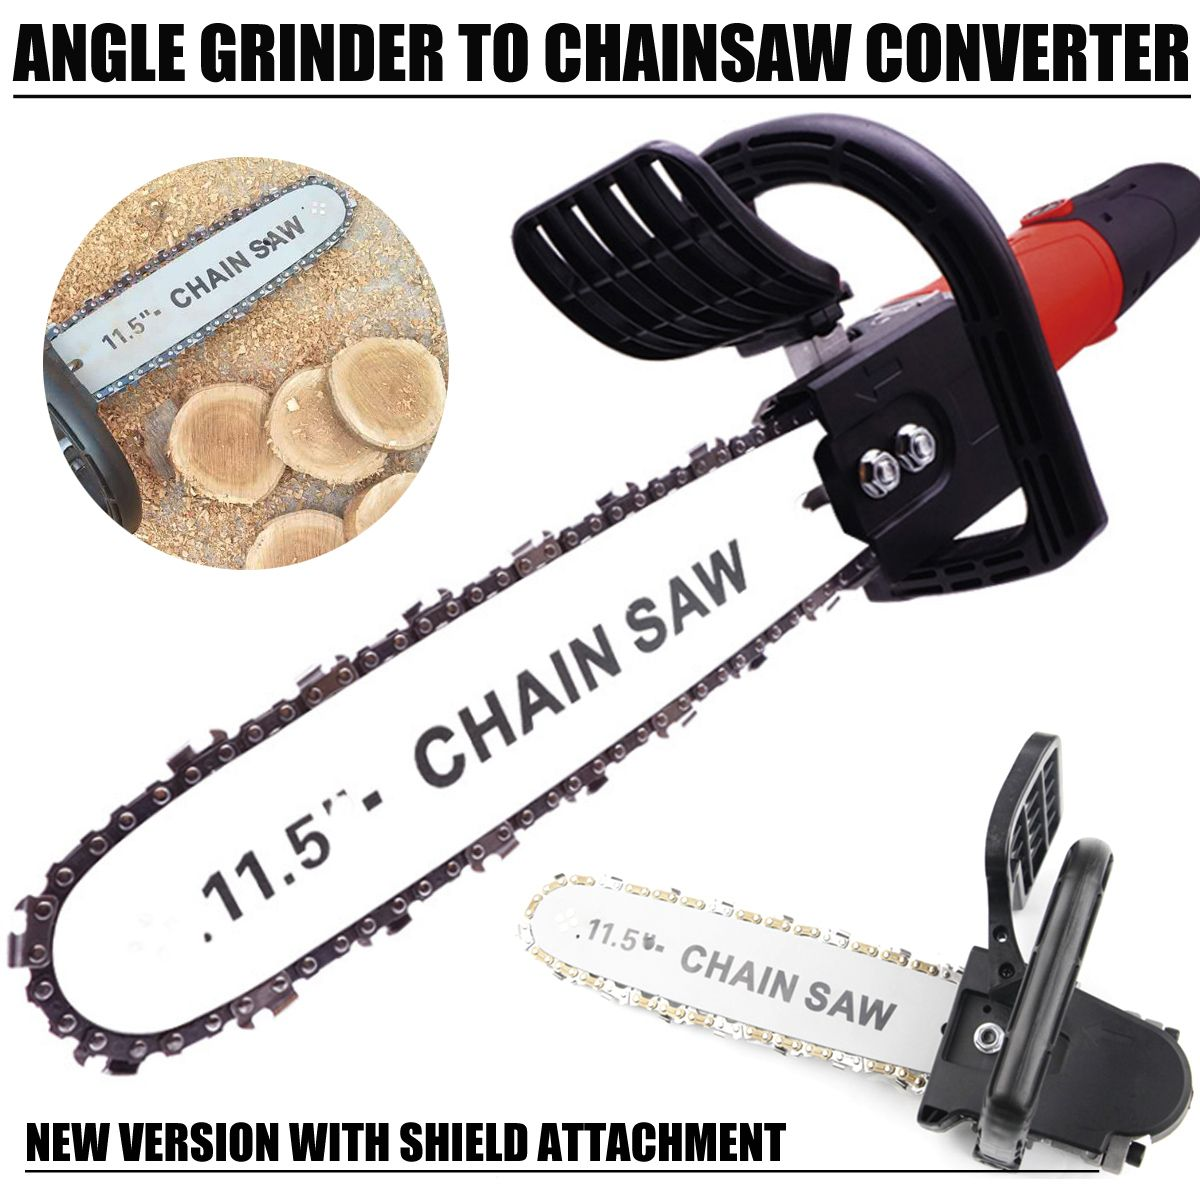 DIY Electric Saw 11.5 Inch Chainsaw Bracket Set High Carbon Steel For Electric Angle Grinder To Chain Saw Woodworking Power Tool